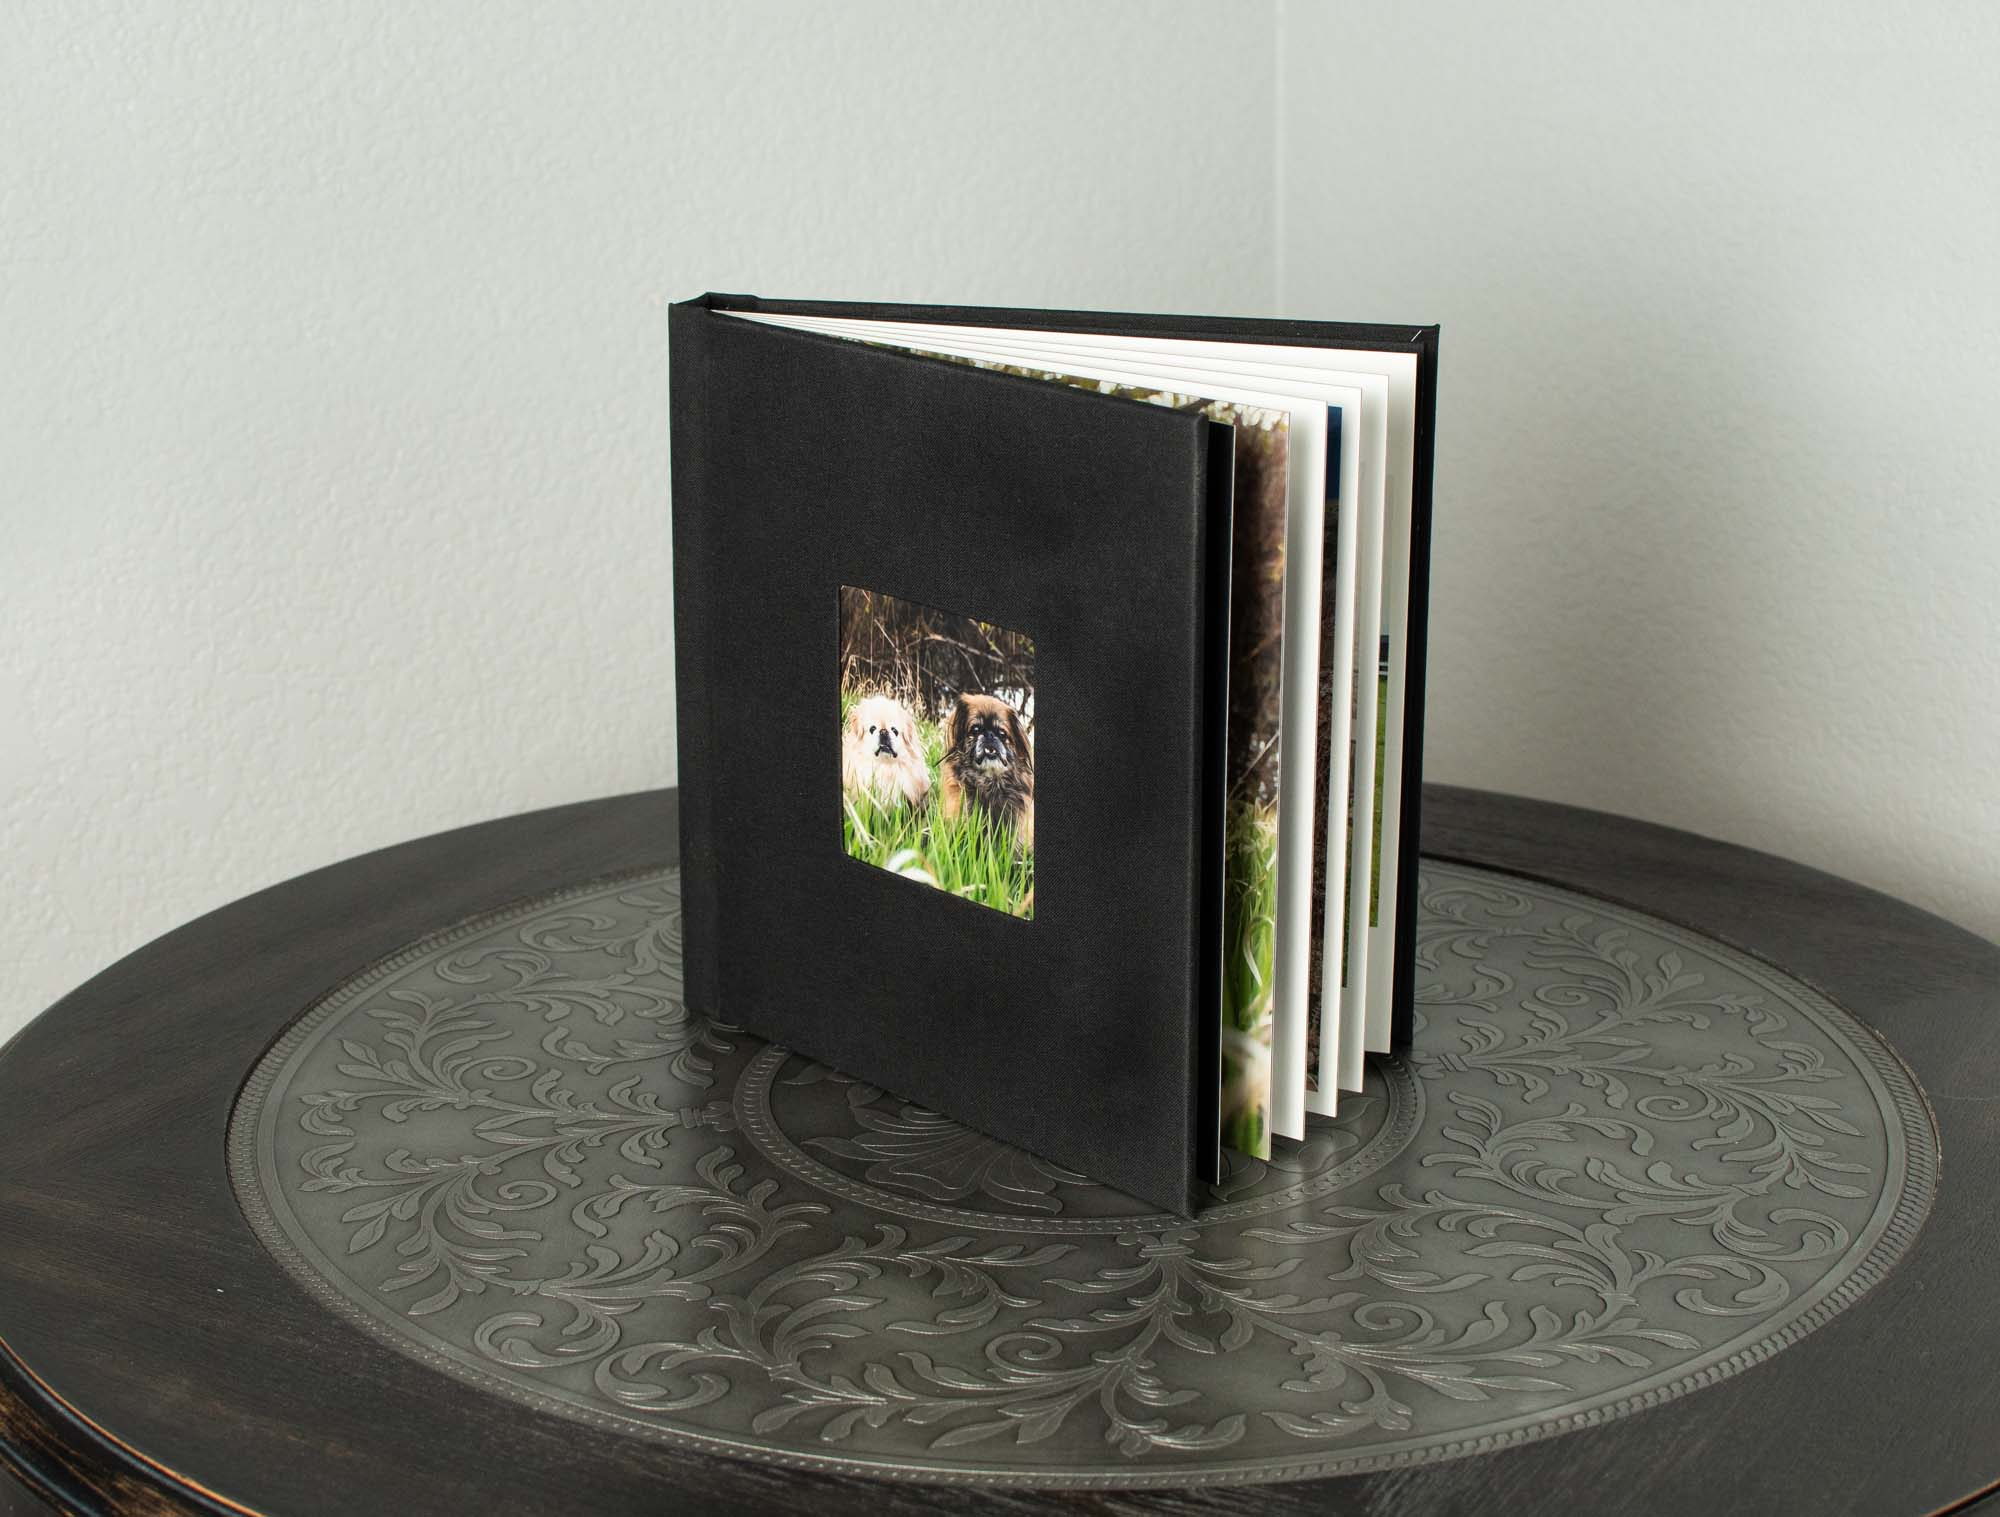 Custom Albums - Display your images in custom album that will look stunning on your coffee table, mantle, or anywhere in your home. Images are printed on durable, stylish press paper in a smooth matte finish. Fabric covers are available in a wide range of colors.